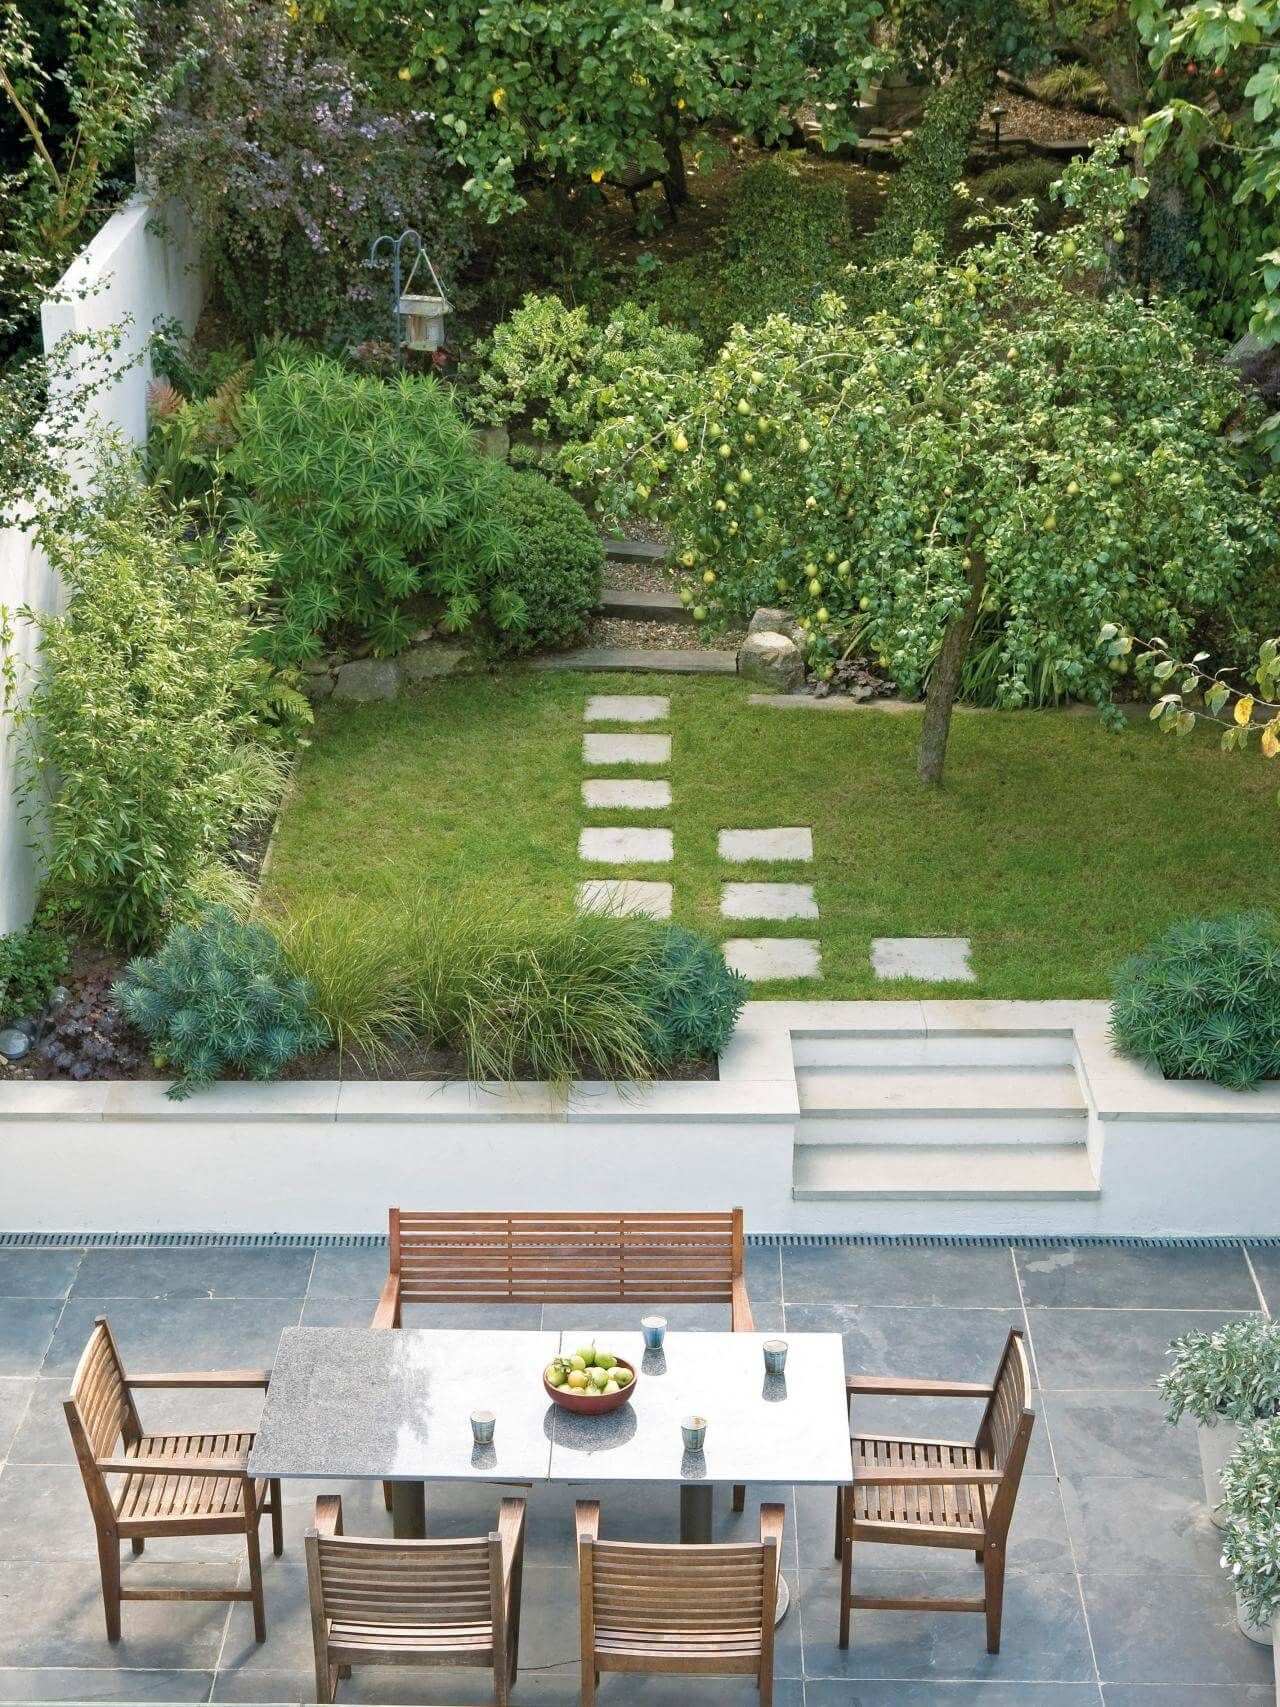 41 Backyard Design Ideas For Small Yards Exterior Small Garden within 15 Clever Ideas How to Craft Backyard Design Ideas For Small Yards